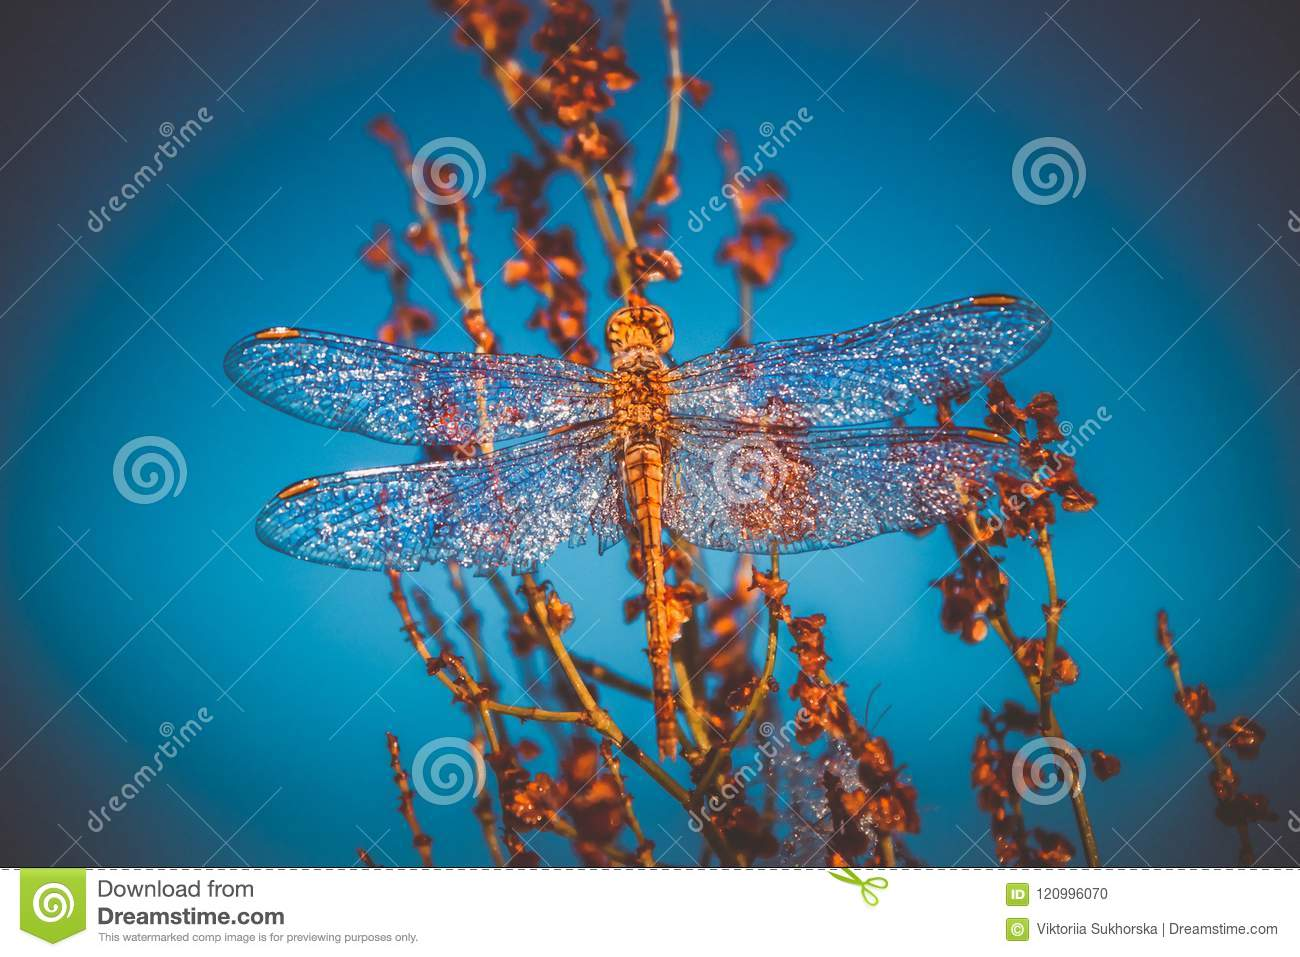 A beautiful insect of a dragonfly Sympetrum Vulgatum Against a background of a blue sky background. Toning